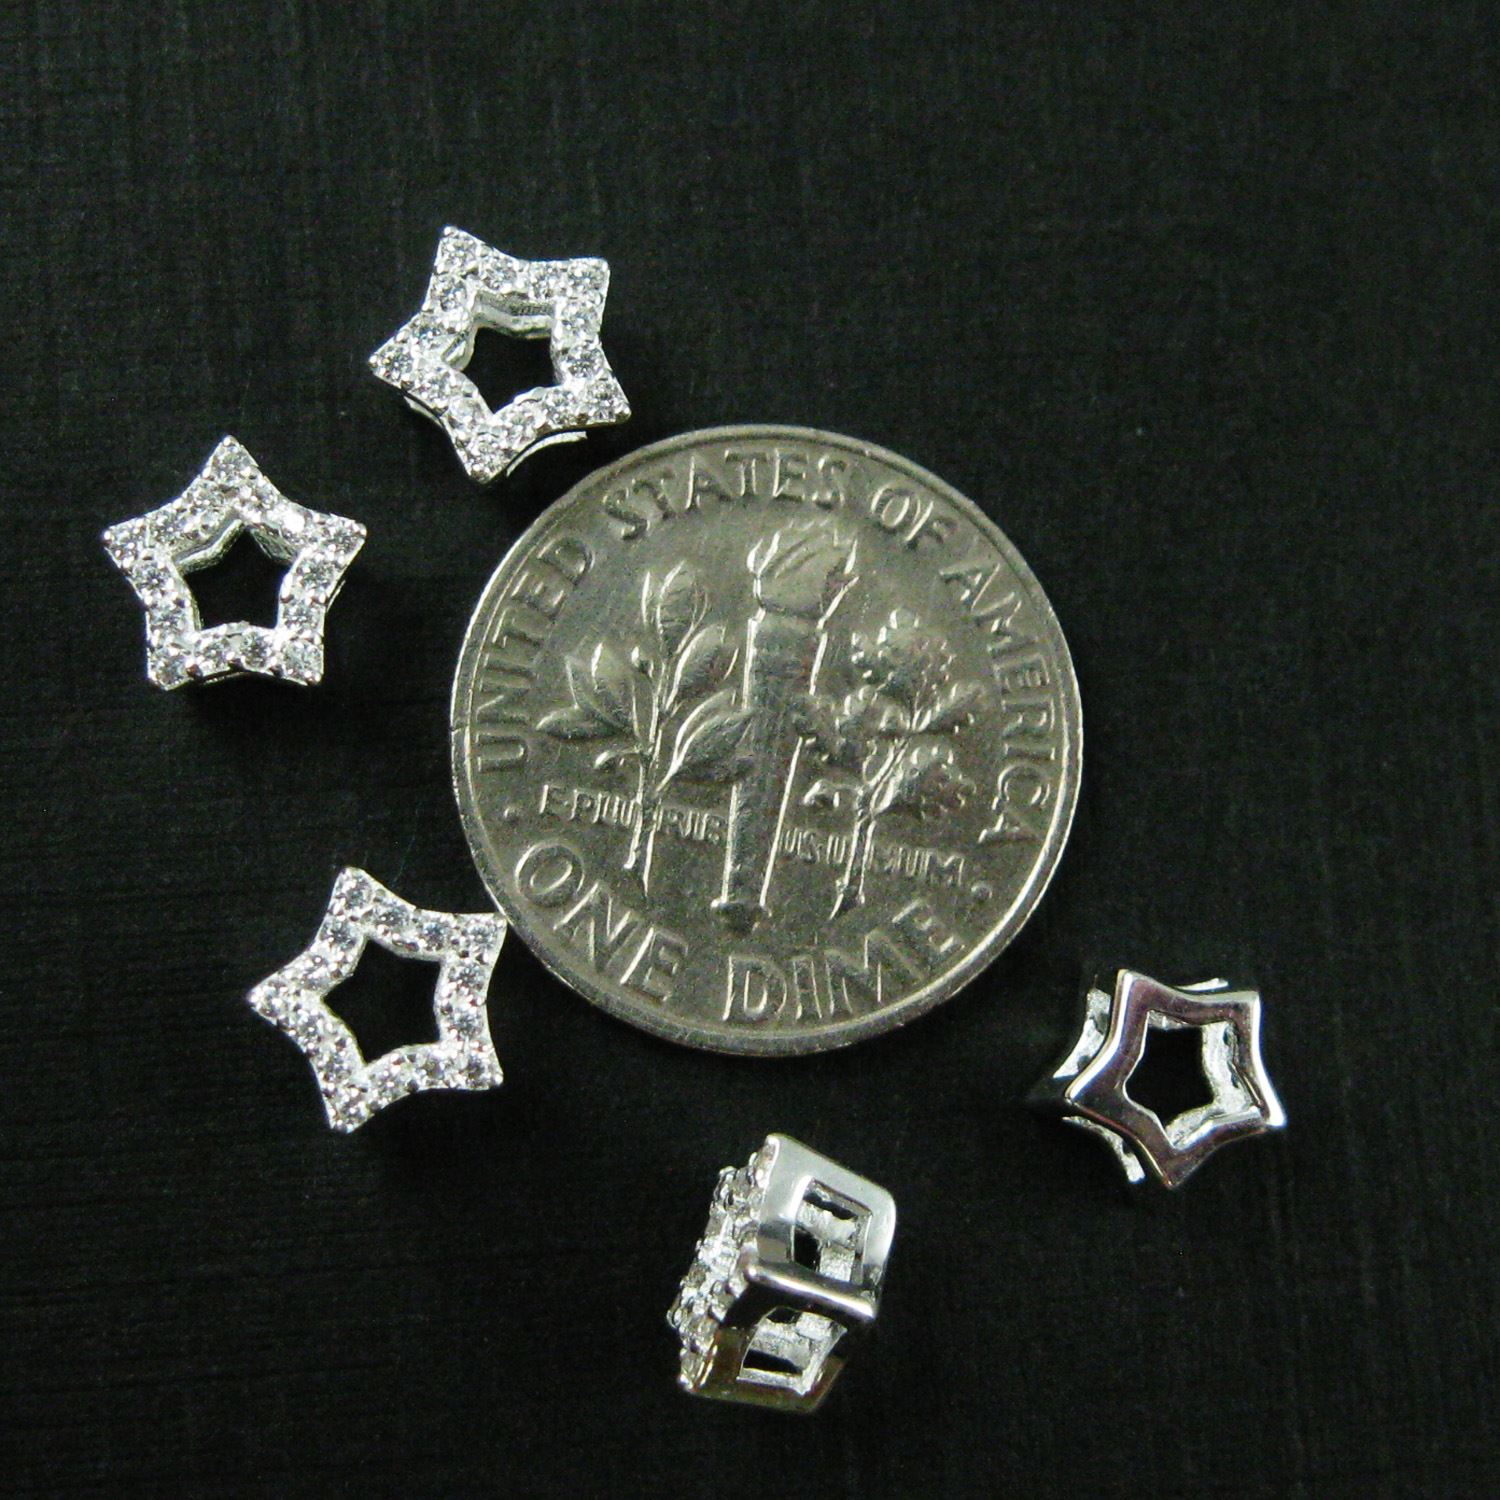 925 Silver Charms - Silver Star Charm- Tiny Star CZ Stone- Cubic Zirconia Star Charm Connector- 1 pc